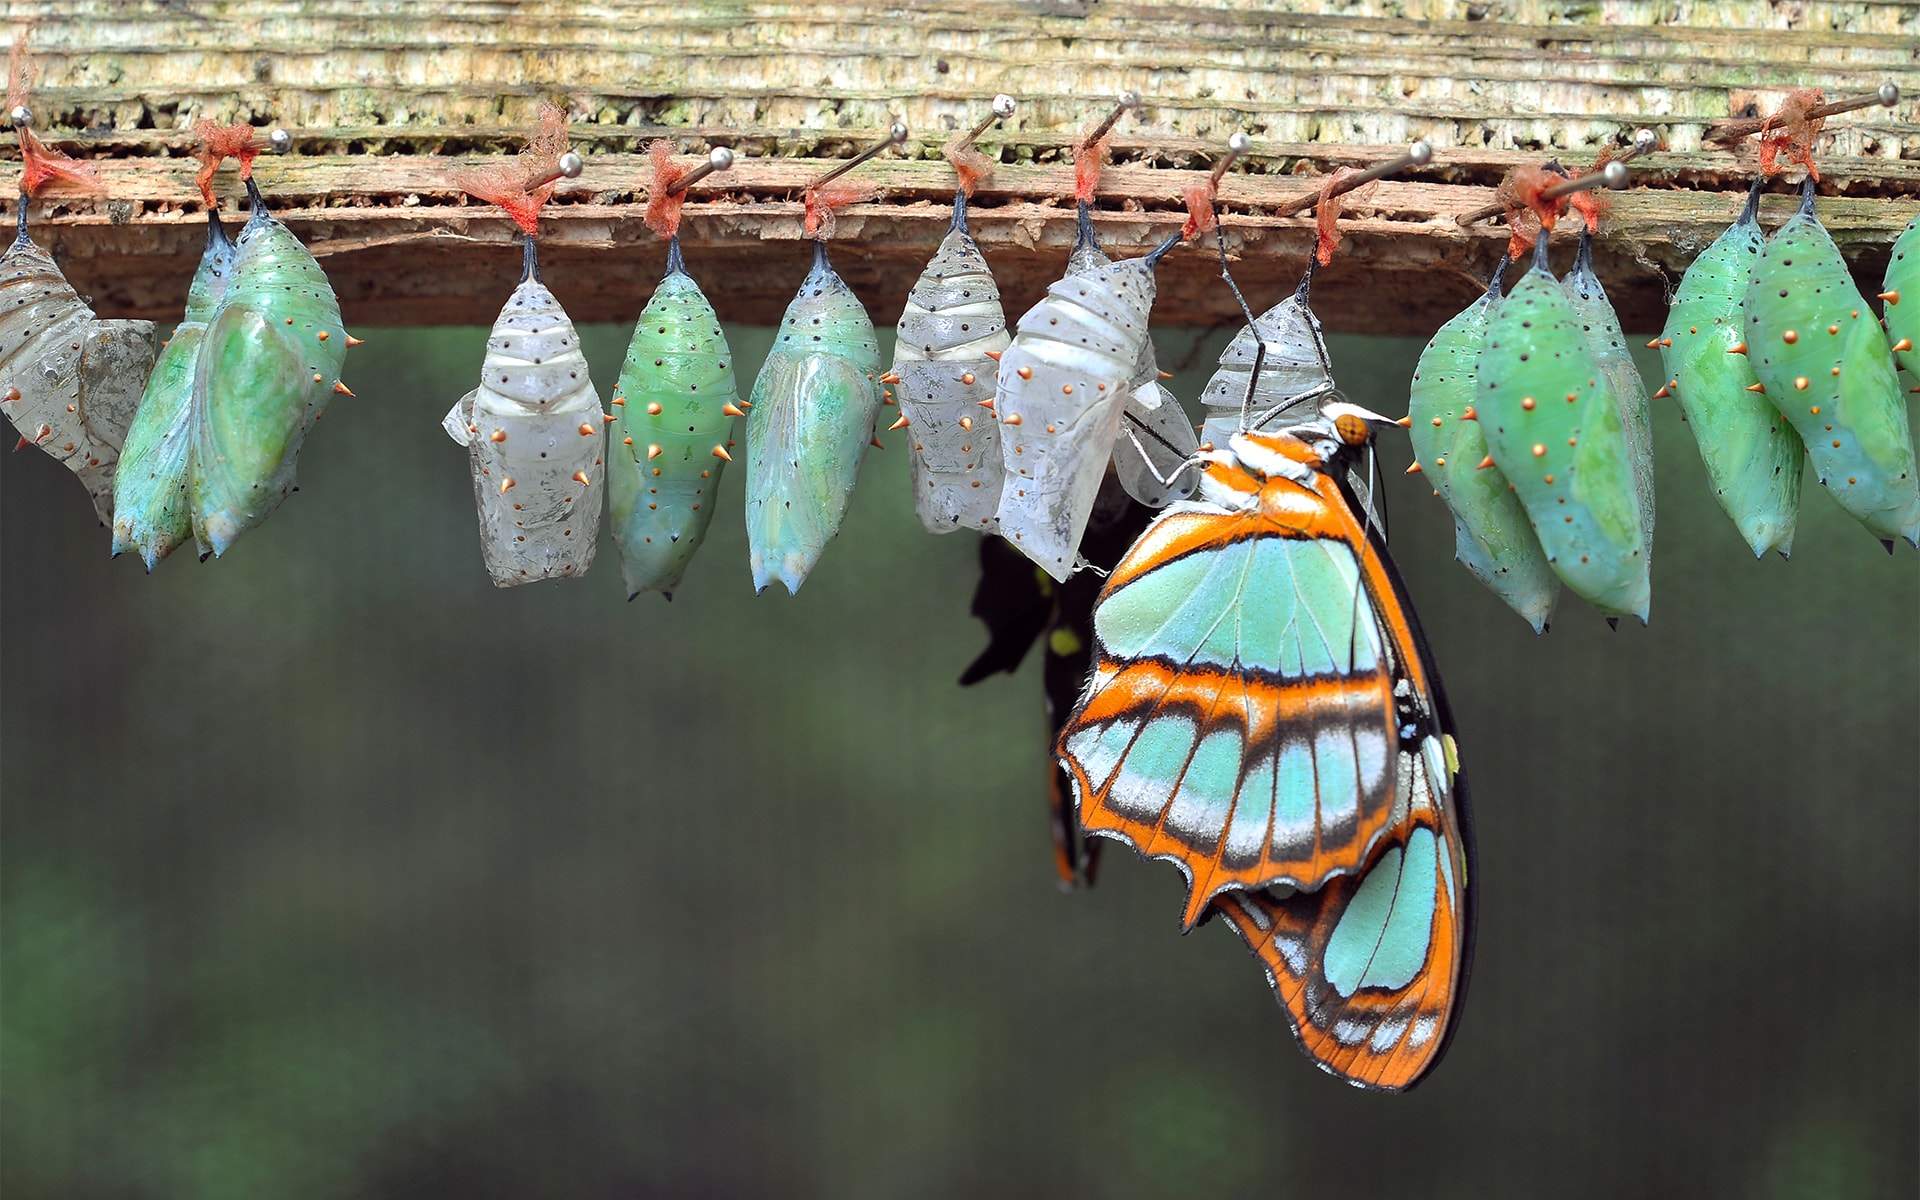 Business transformation blog post image - butterfly emerging from chrysalis